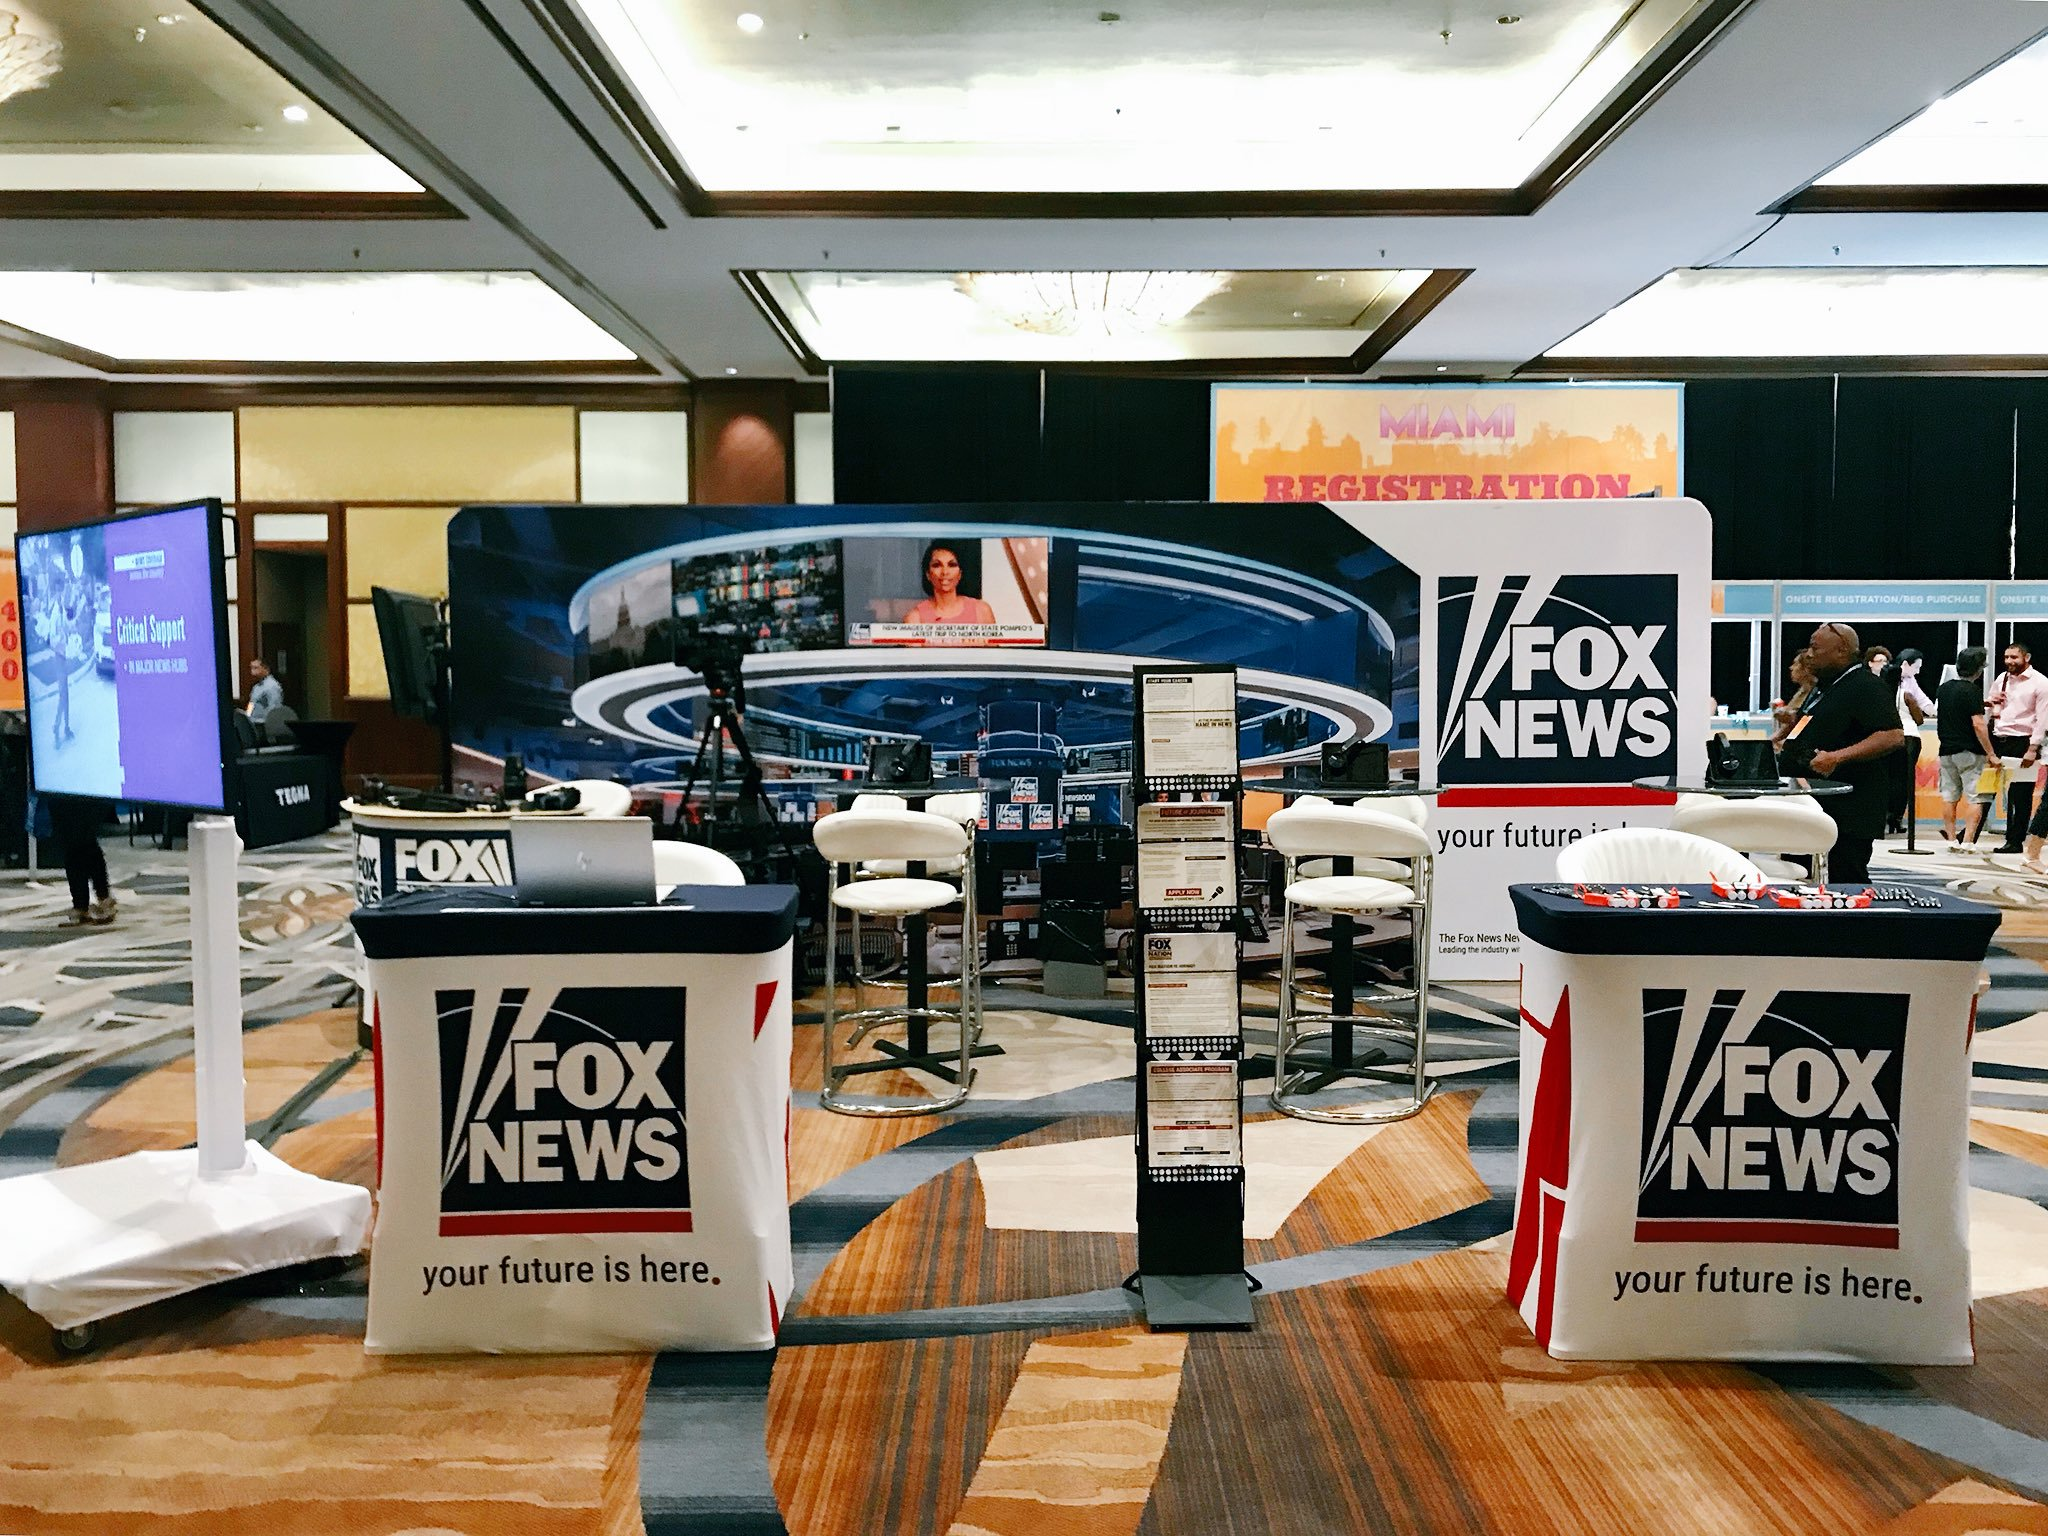 NAHJ Disinvites Fox News From Convention | journal-isms com